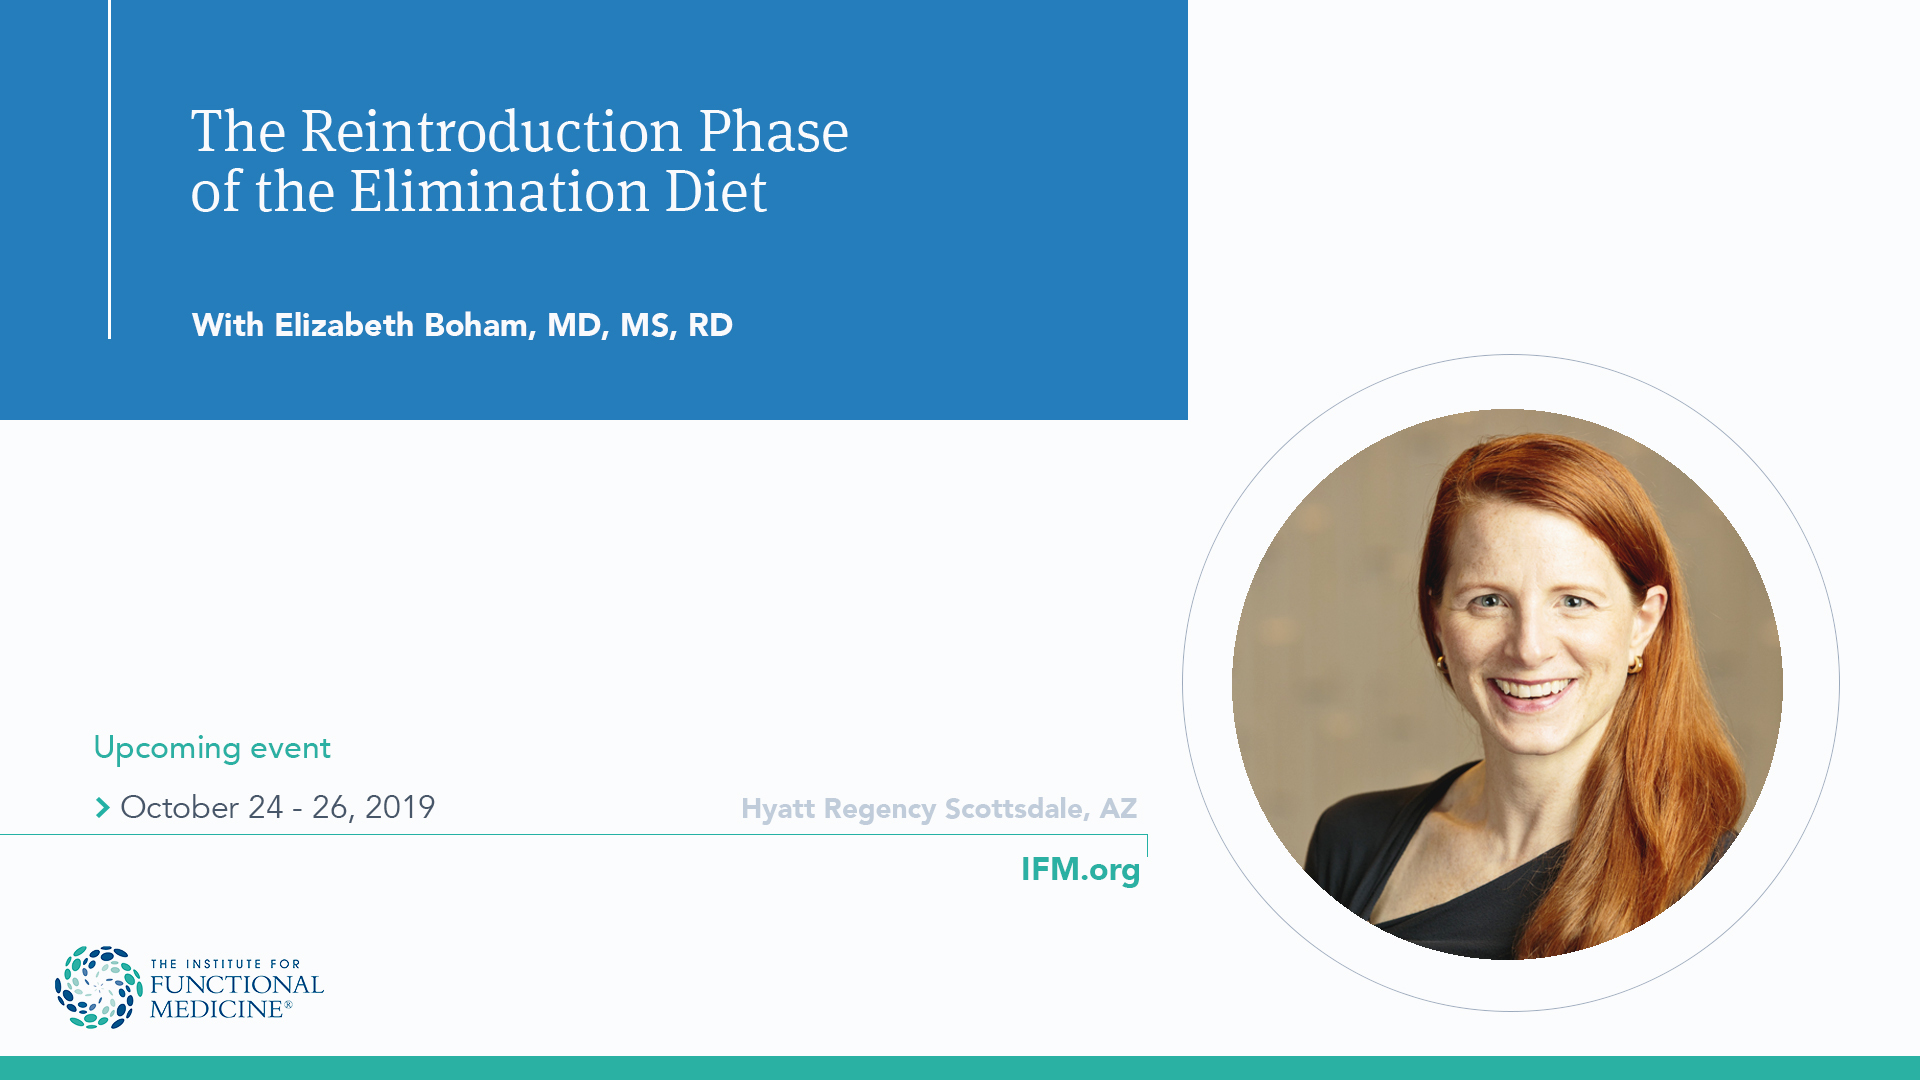 The Reintroduction Phase of the Elimination Diet